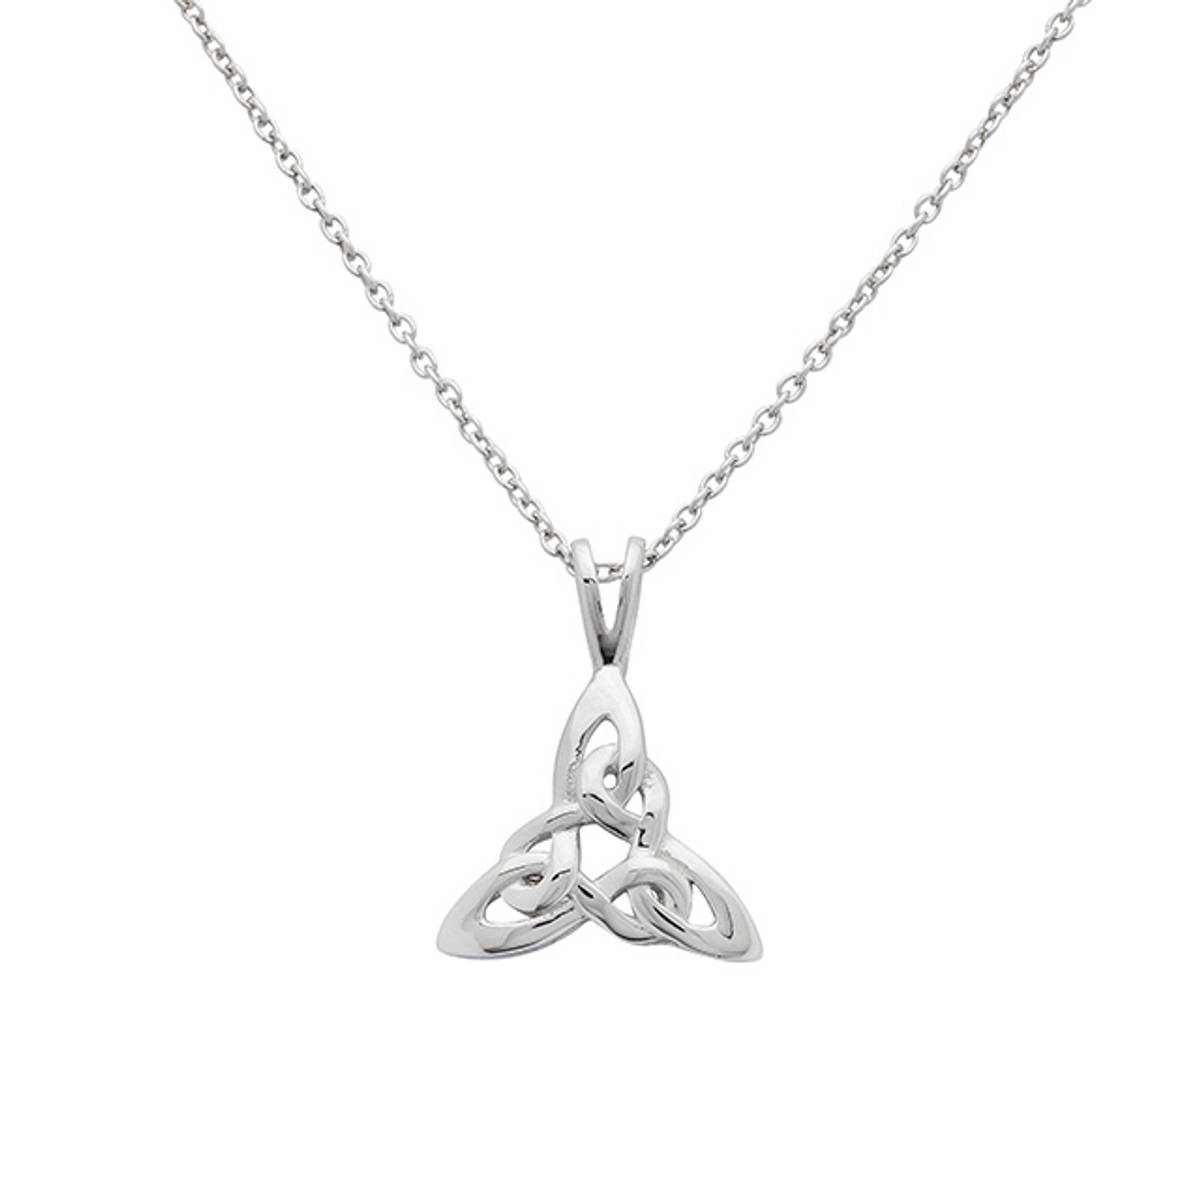 Sterling Silver Celtic Trinity Knot Pendant.  Size: 15mm Chain Length: 18 inches